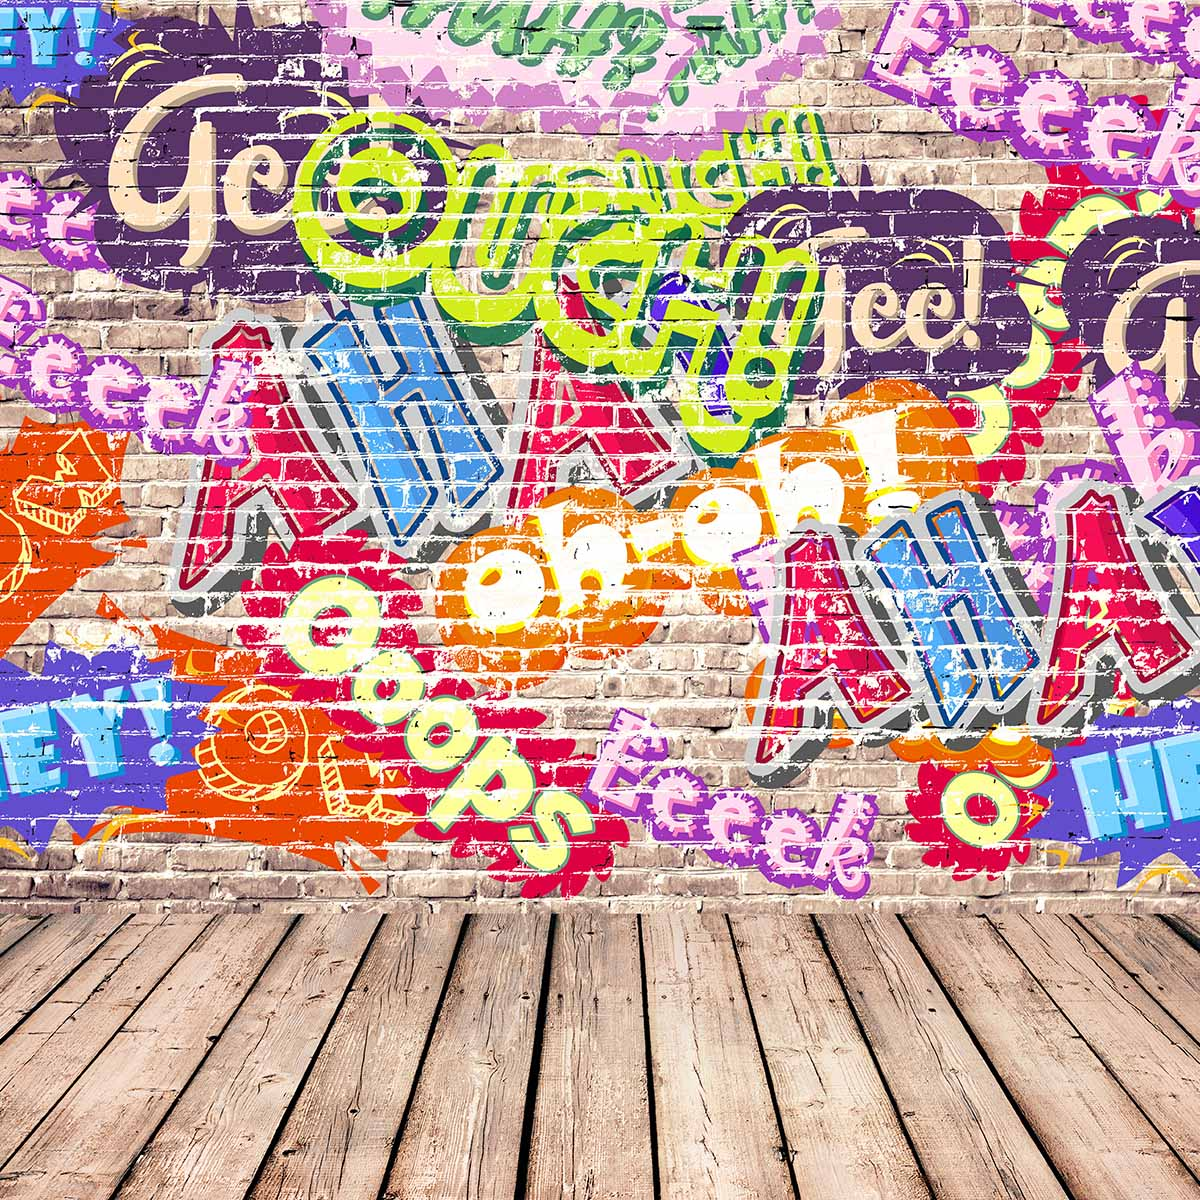 Allenjoy photography background store Graffiti brick wall theme backdrop Colorful and Cool Text pattern background New Arrivals